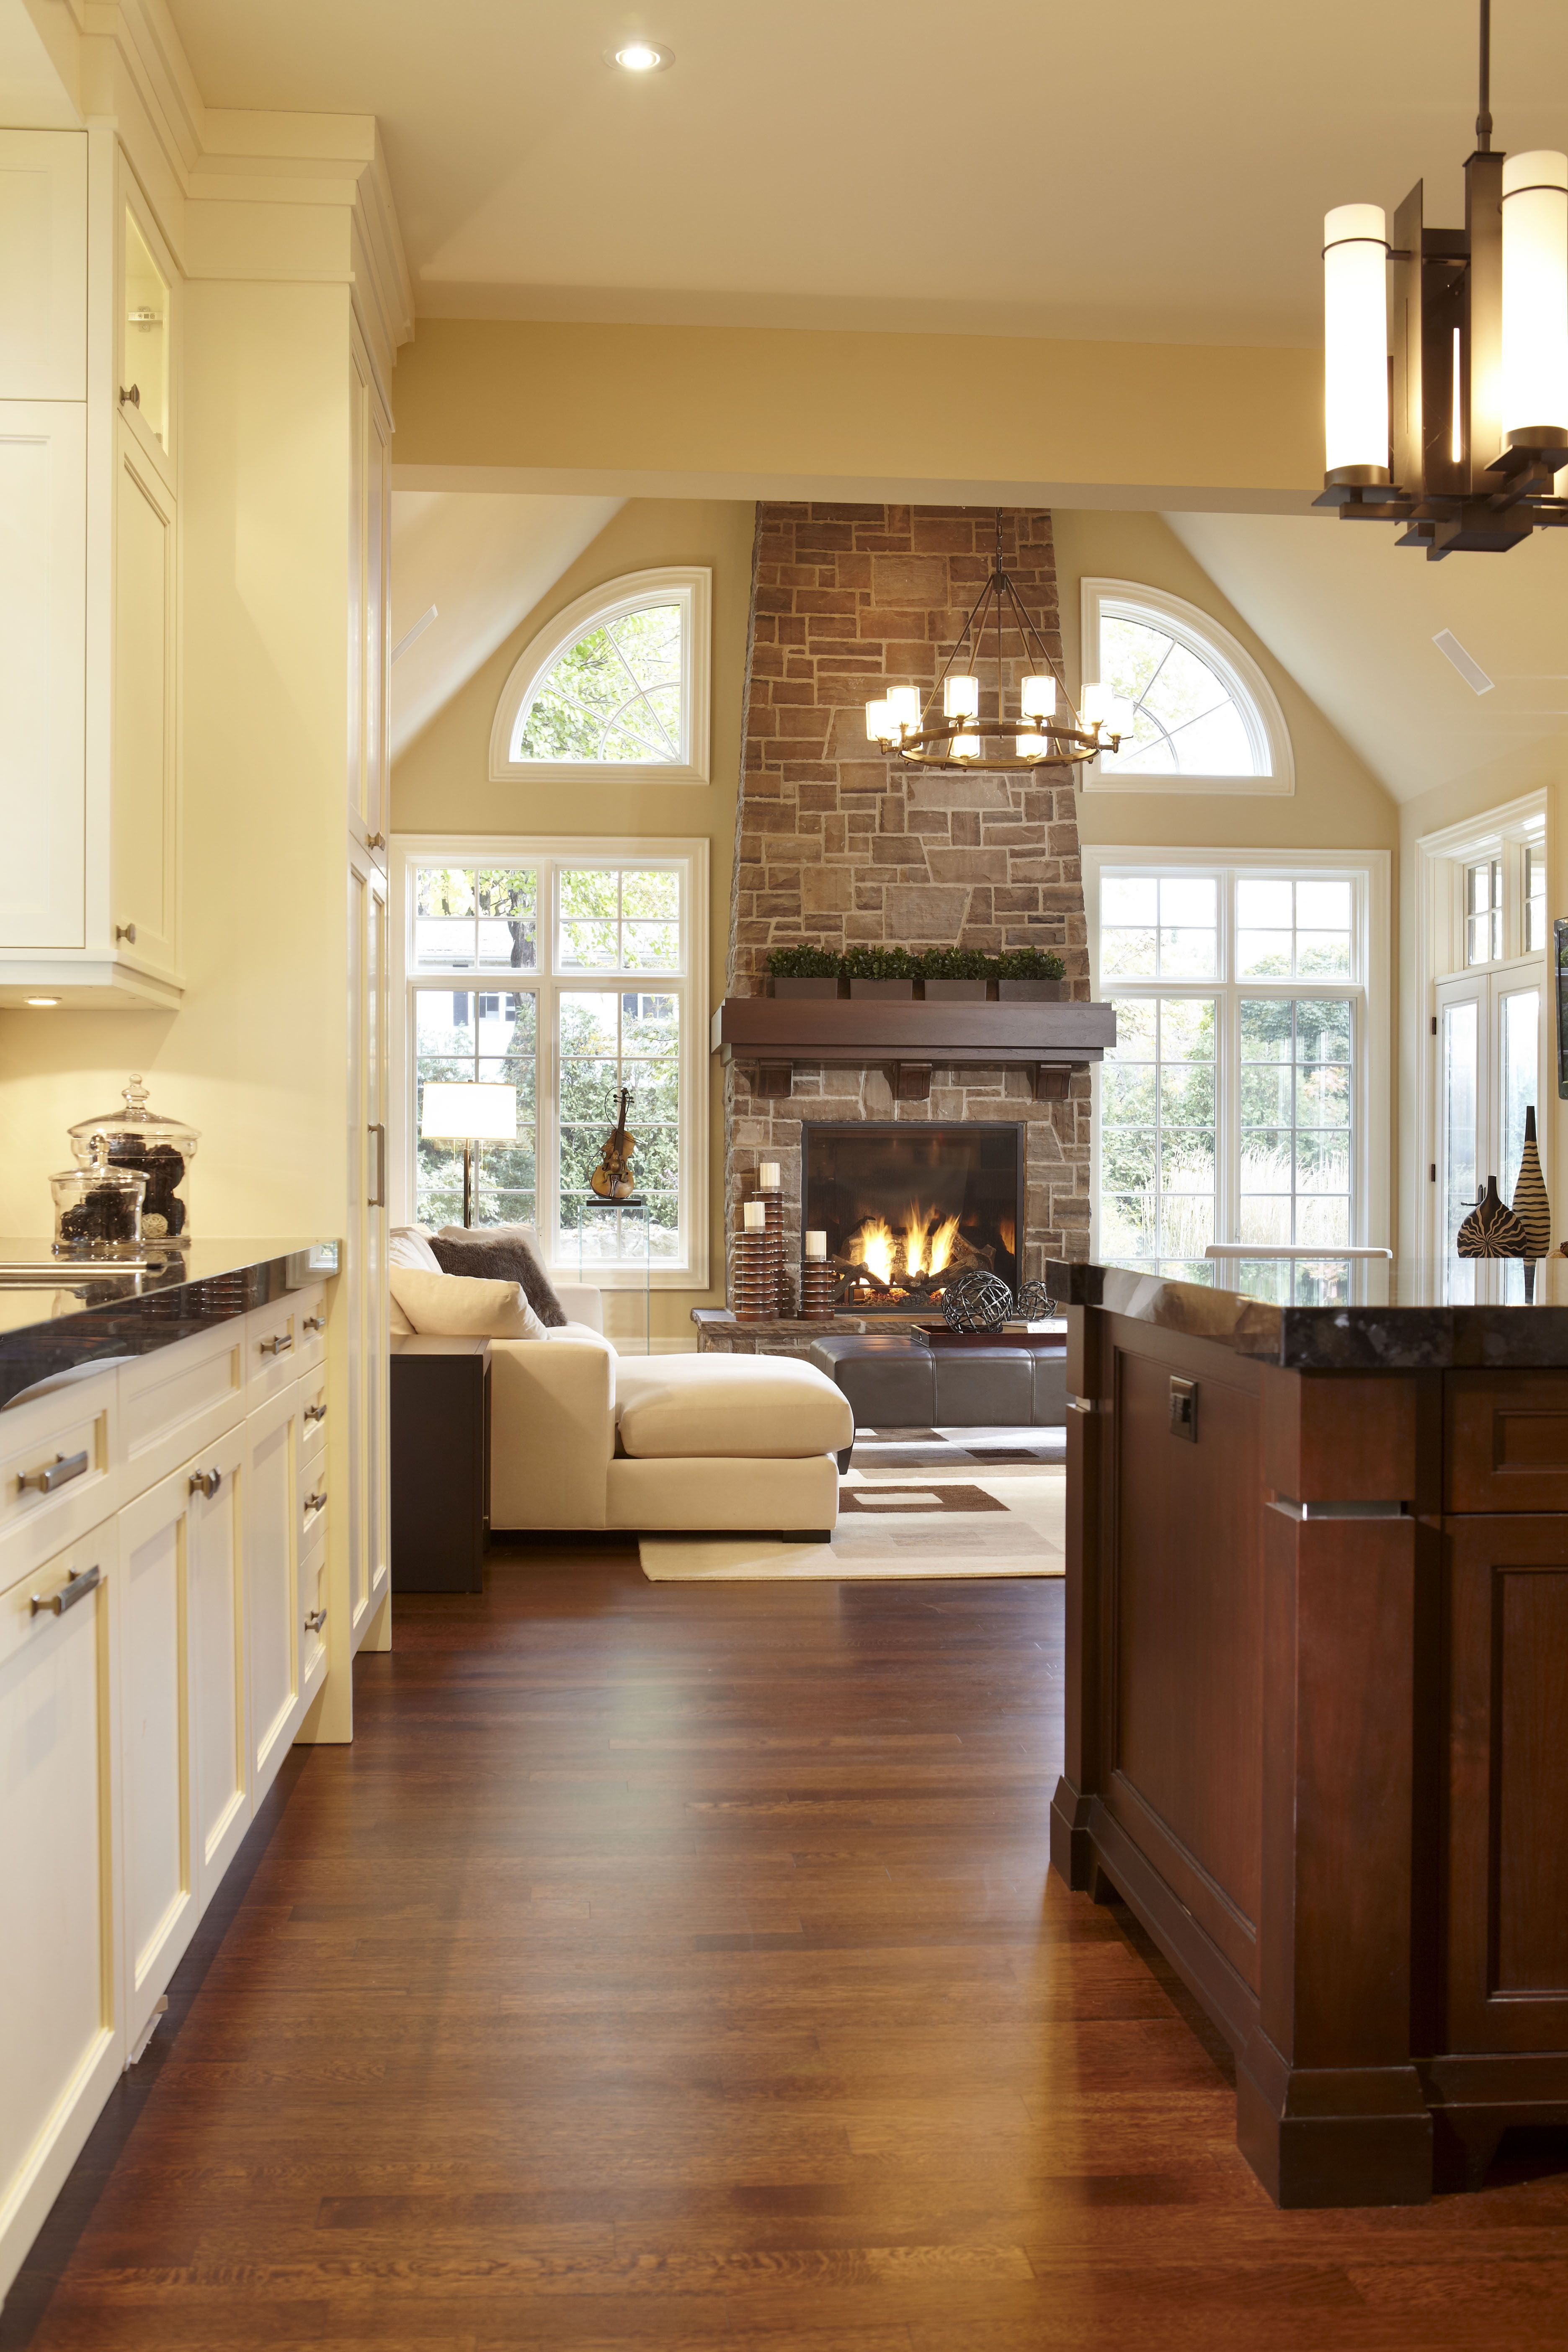 A Transitional Style Great Room By Parkyn Design Www Parkyndesign Com: Interior Design, Interior, Transitional House